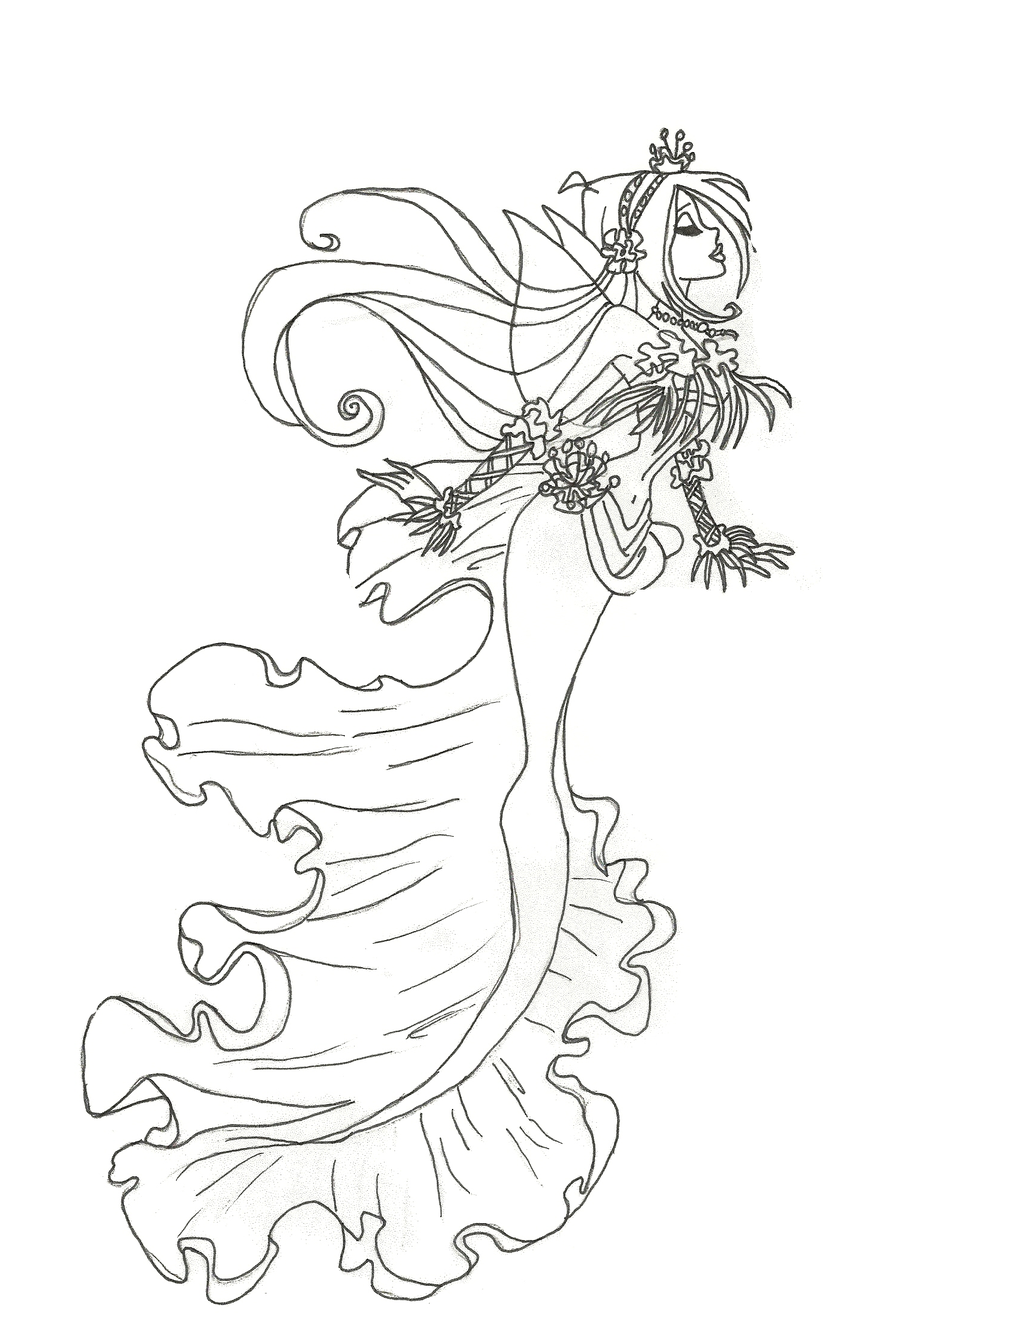 Winx mermaid coloring pages to print and download for free for Coloring page mermaid